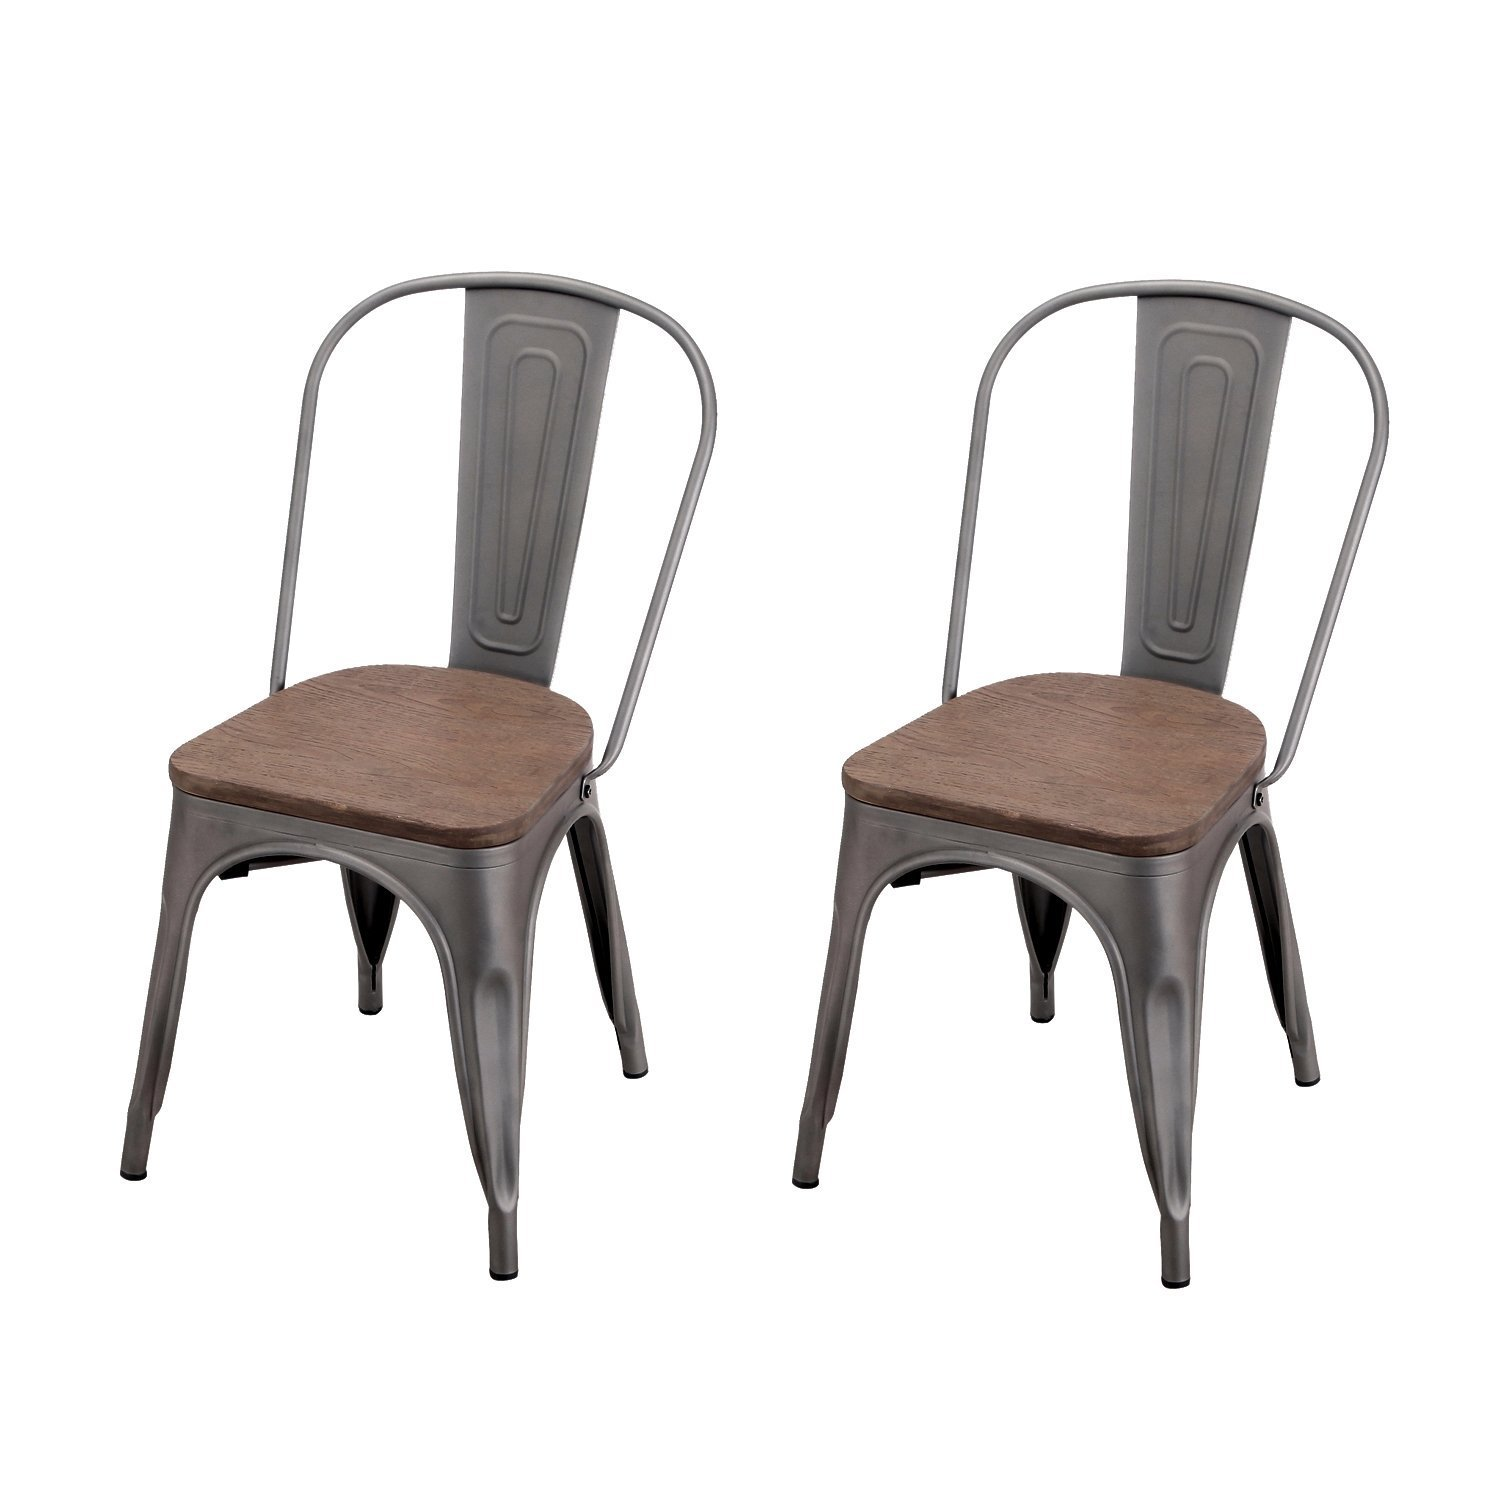 Adeco Metal Stackable Industrial Chic Dining Bistro Cafe Side Chairs - Wooden Seat - Grey (Set of 2)